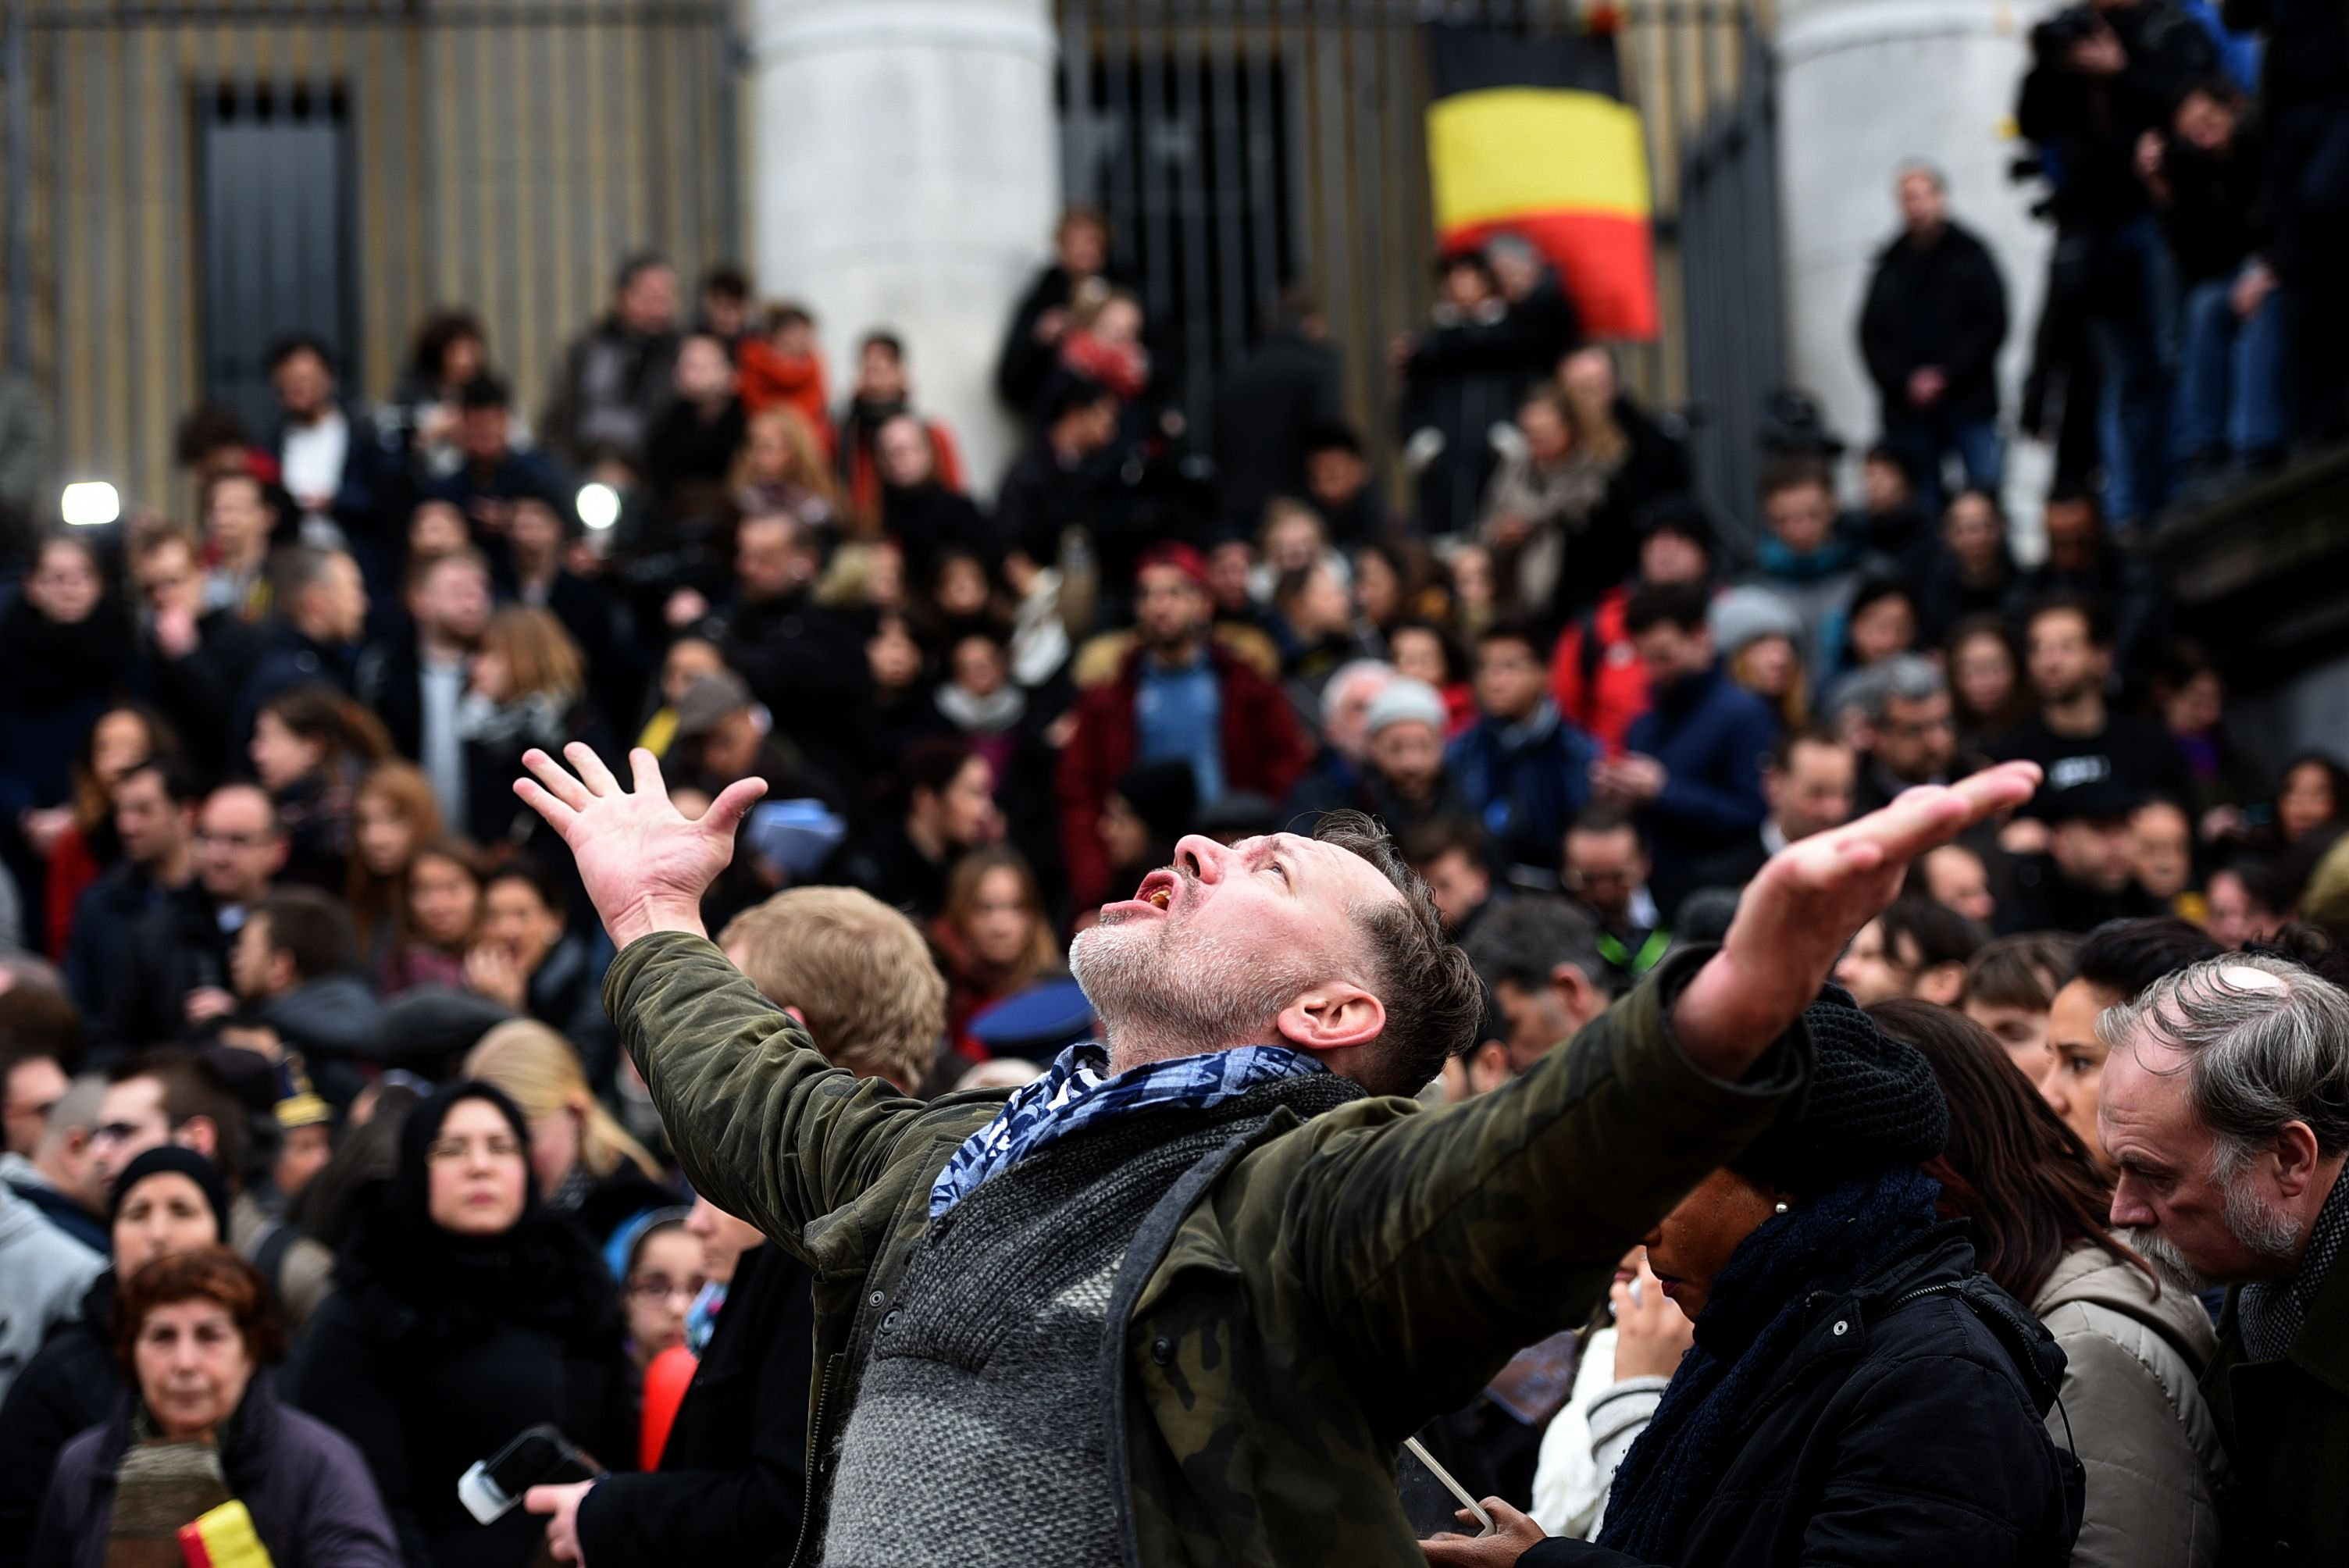 A man reacts as people gather to observe a minute of silence in memory of the victims of the Brussels airport and metro bombings, on March 23, 2016.